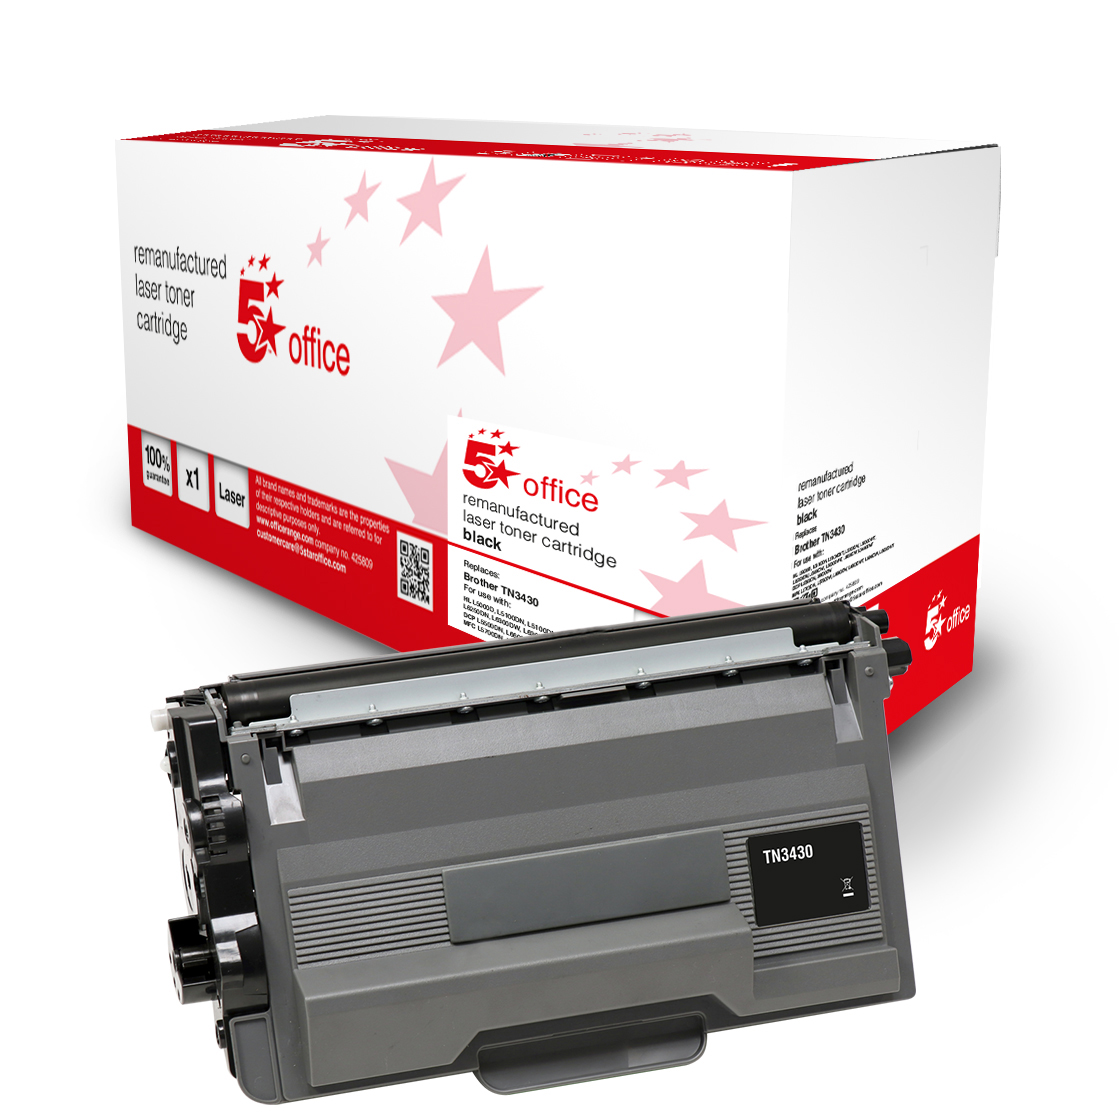 5 Star Office Remanufactured Toner Cartridge Page Life Black 3000pp [Brother TN3430 Alternative]